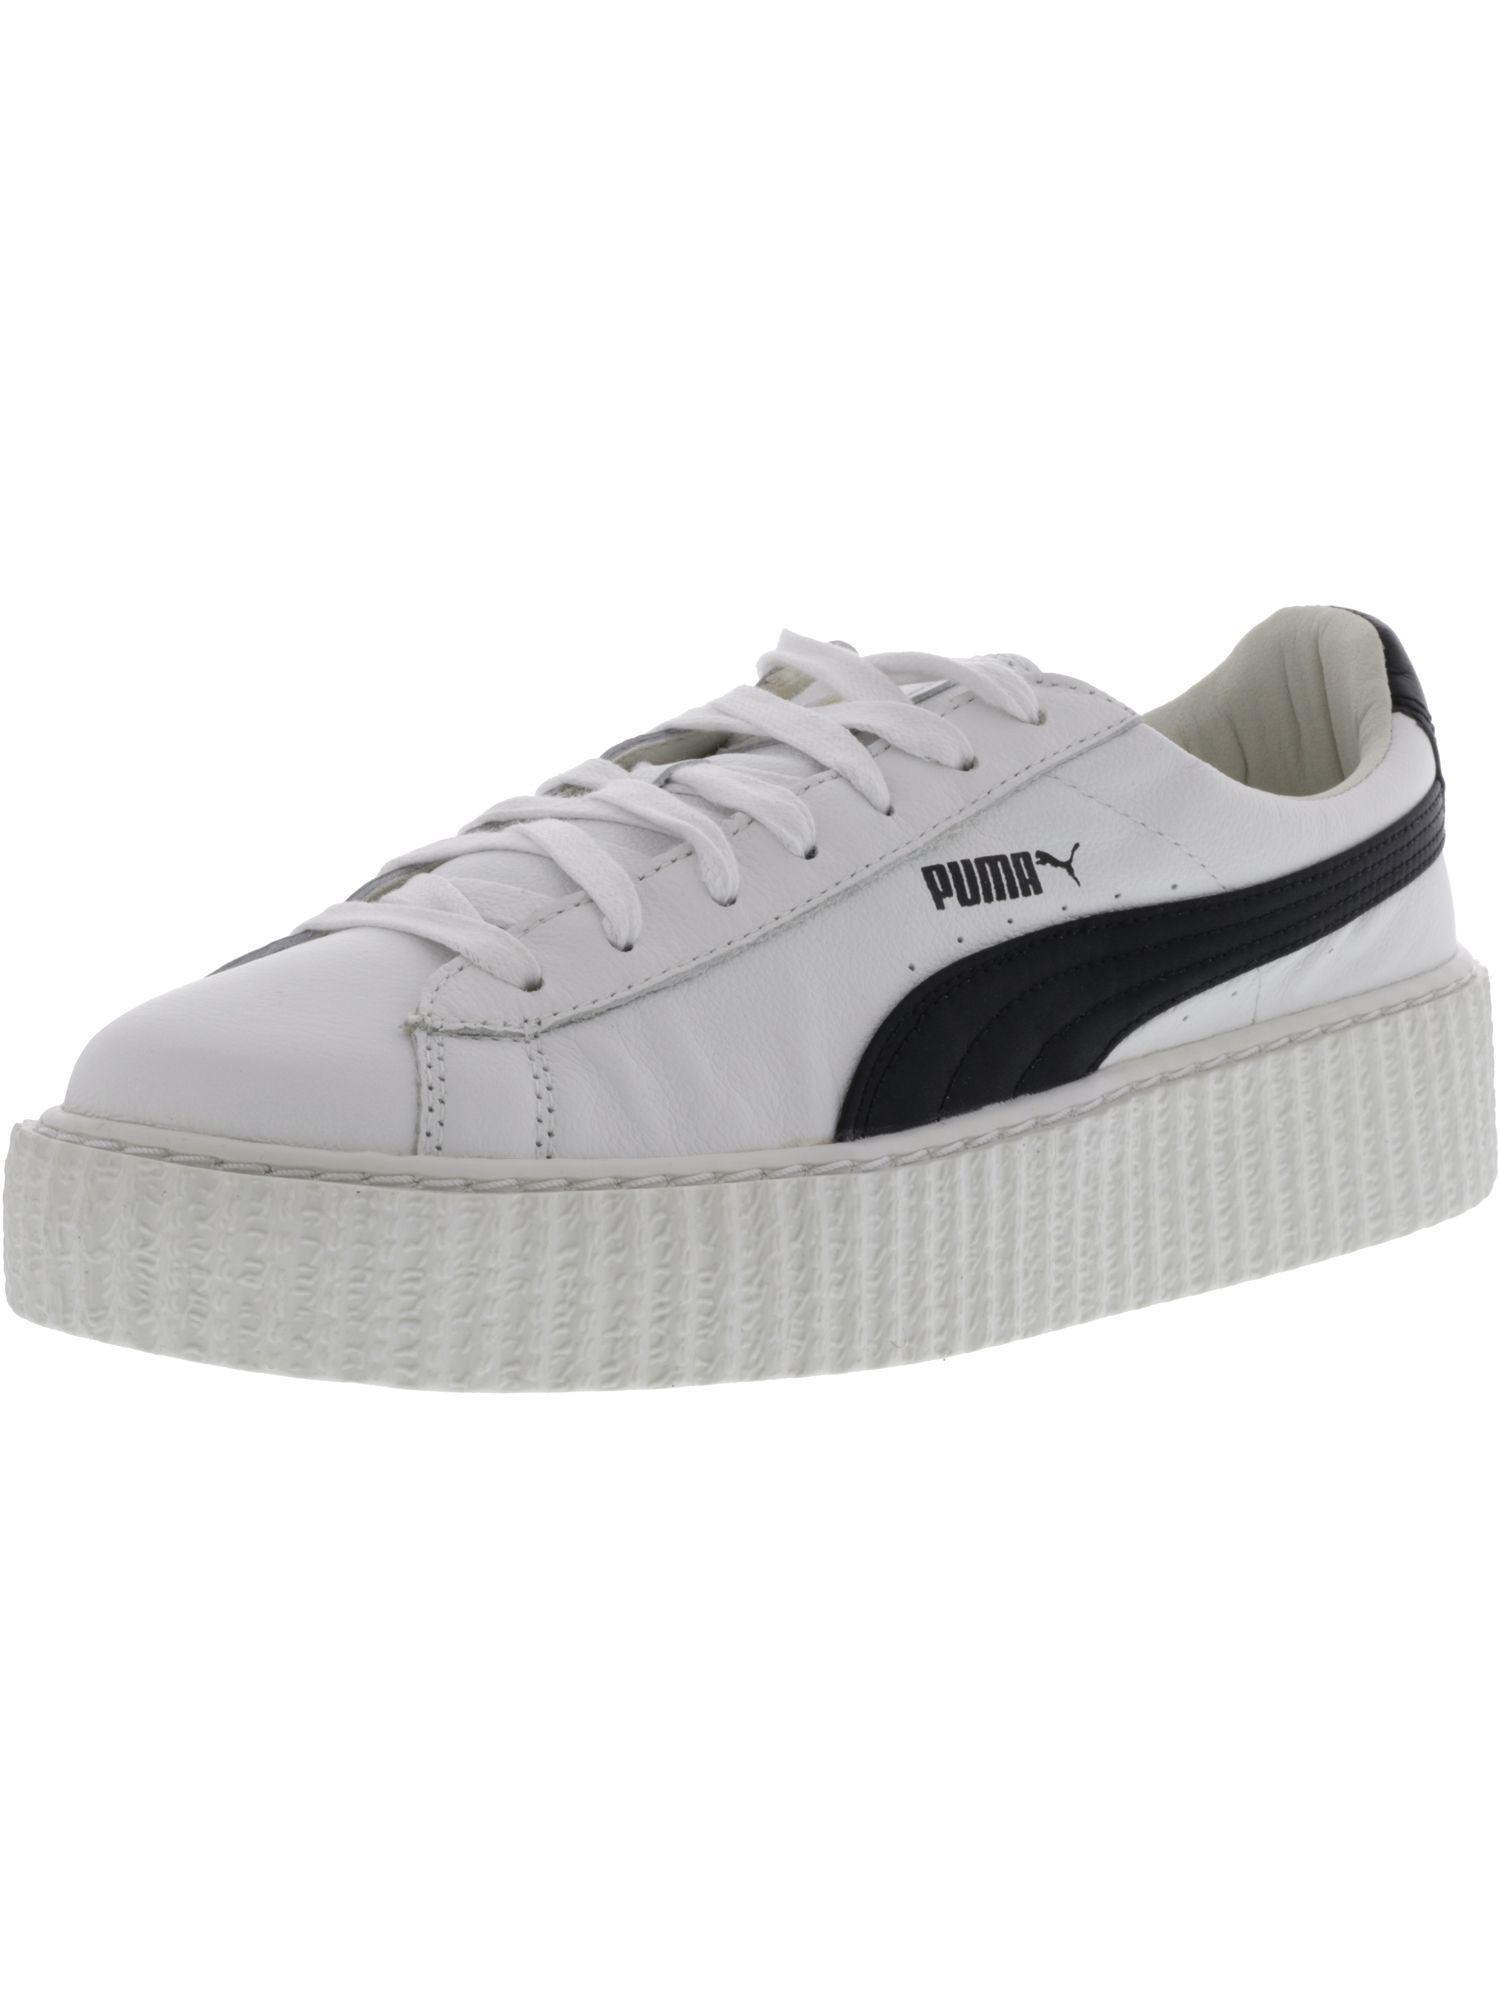 1f25daa1a7fb70 Lyst - Puma Womens Creeper Low Top Lace Up Fashion Sneakers in White ...